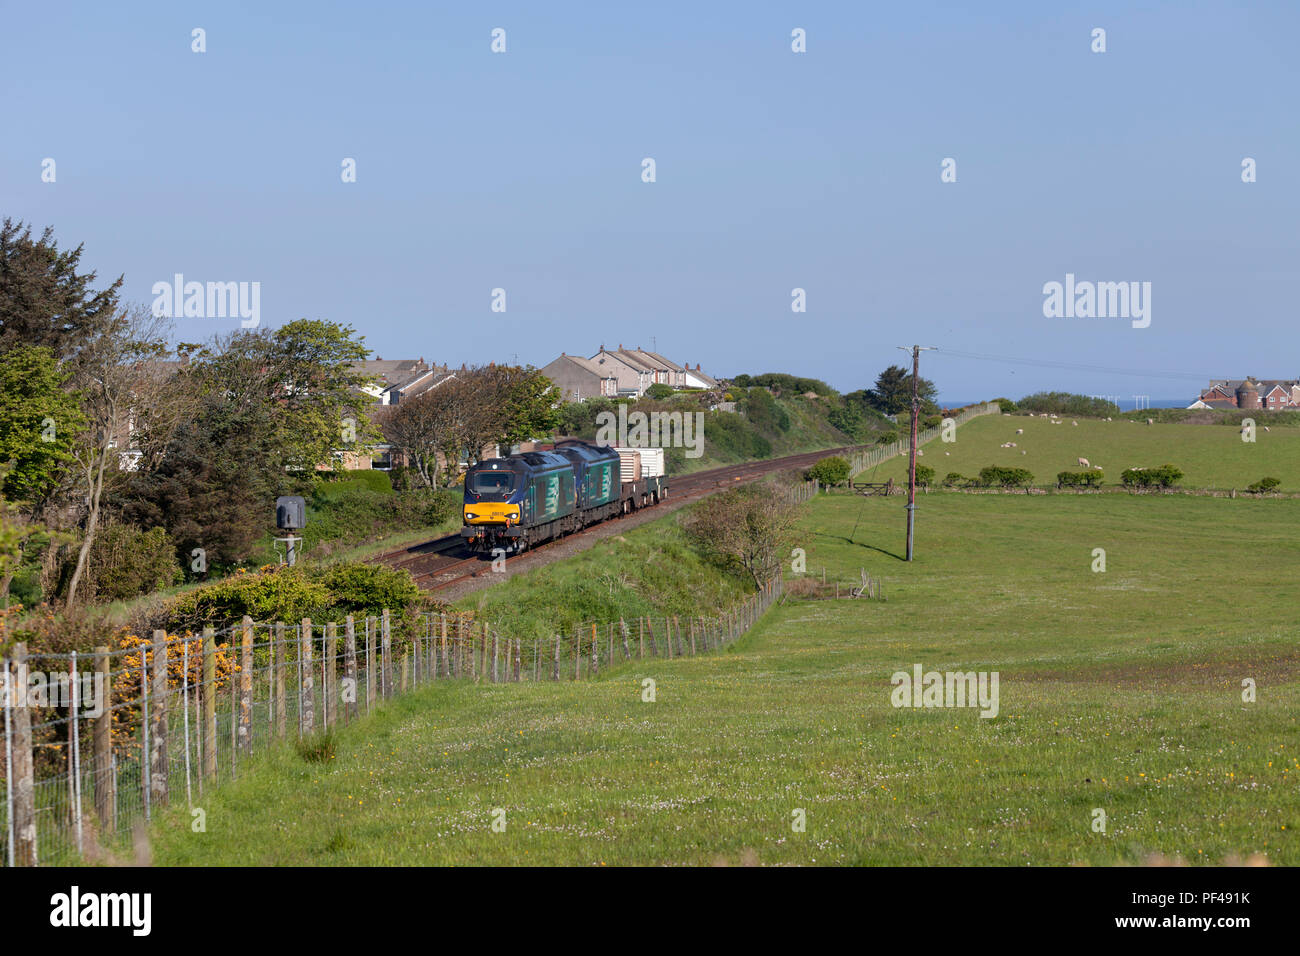 2 Direct rail Services class 68 locomotives passing Seascale (south of Sellafield) with a nuclear flask train - Stock Image